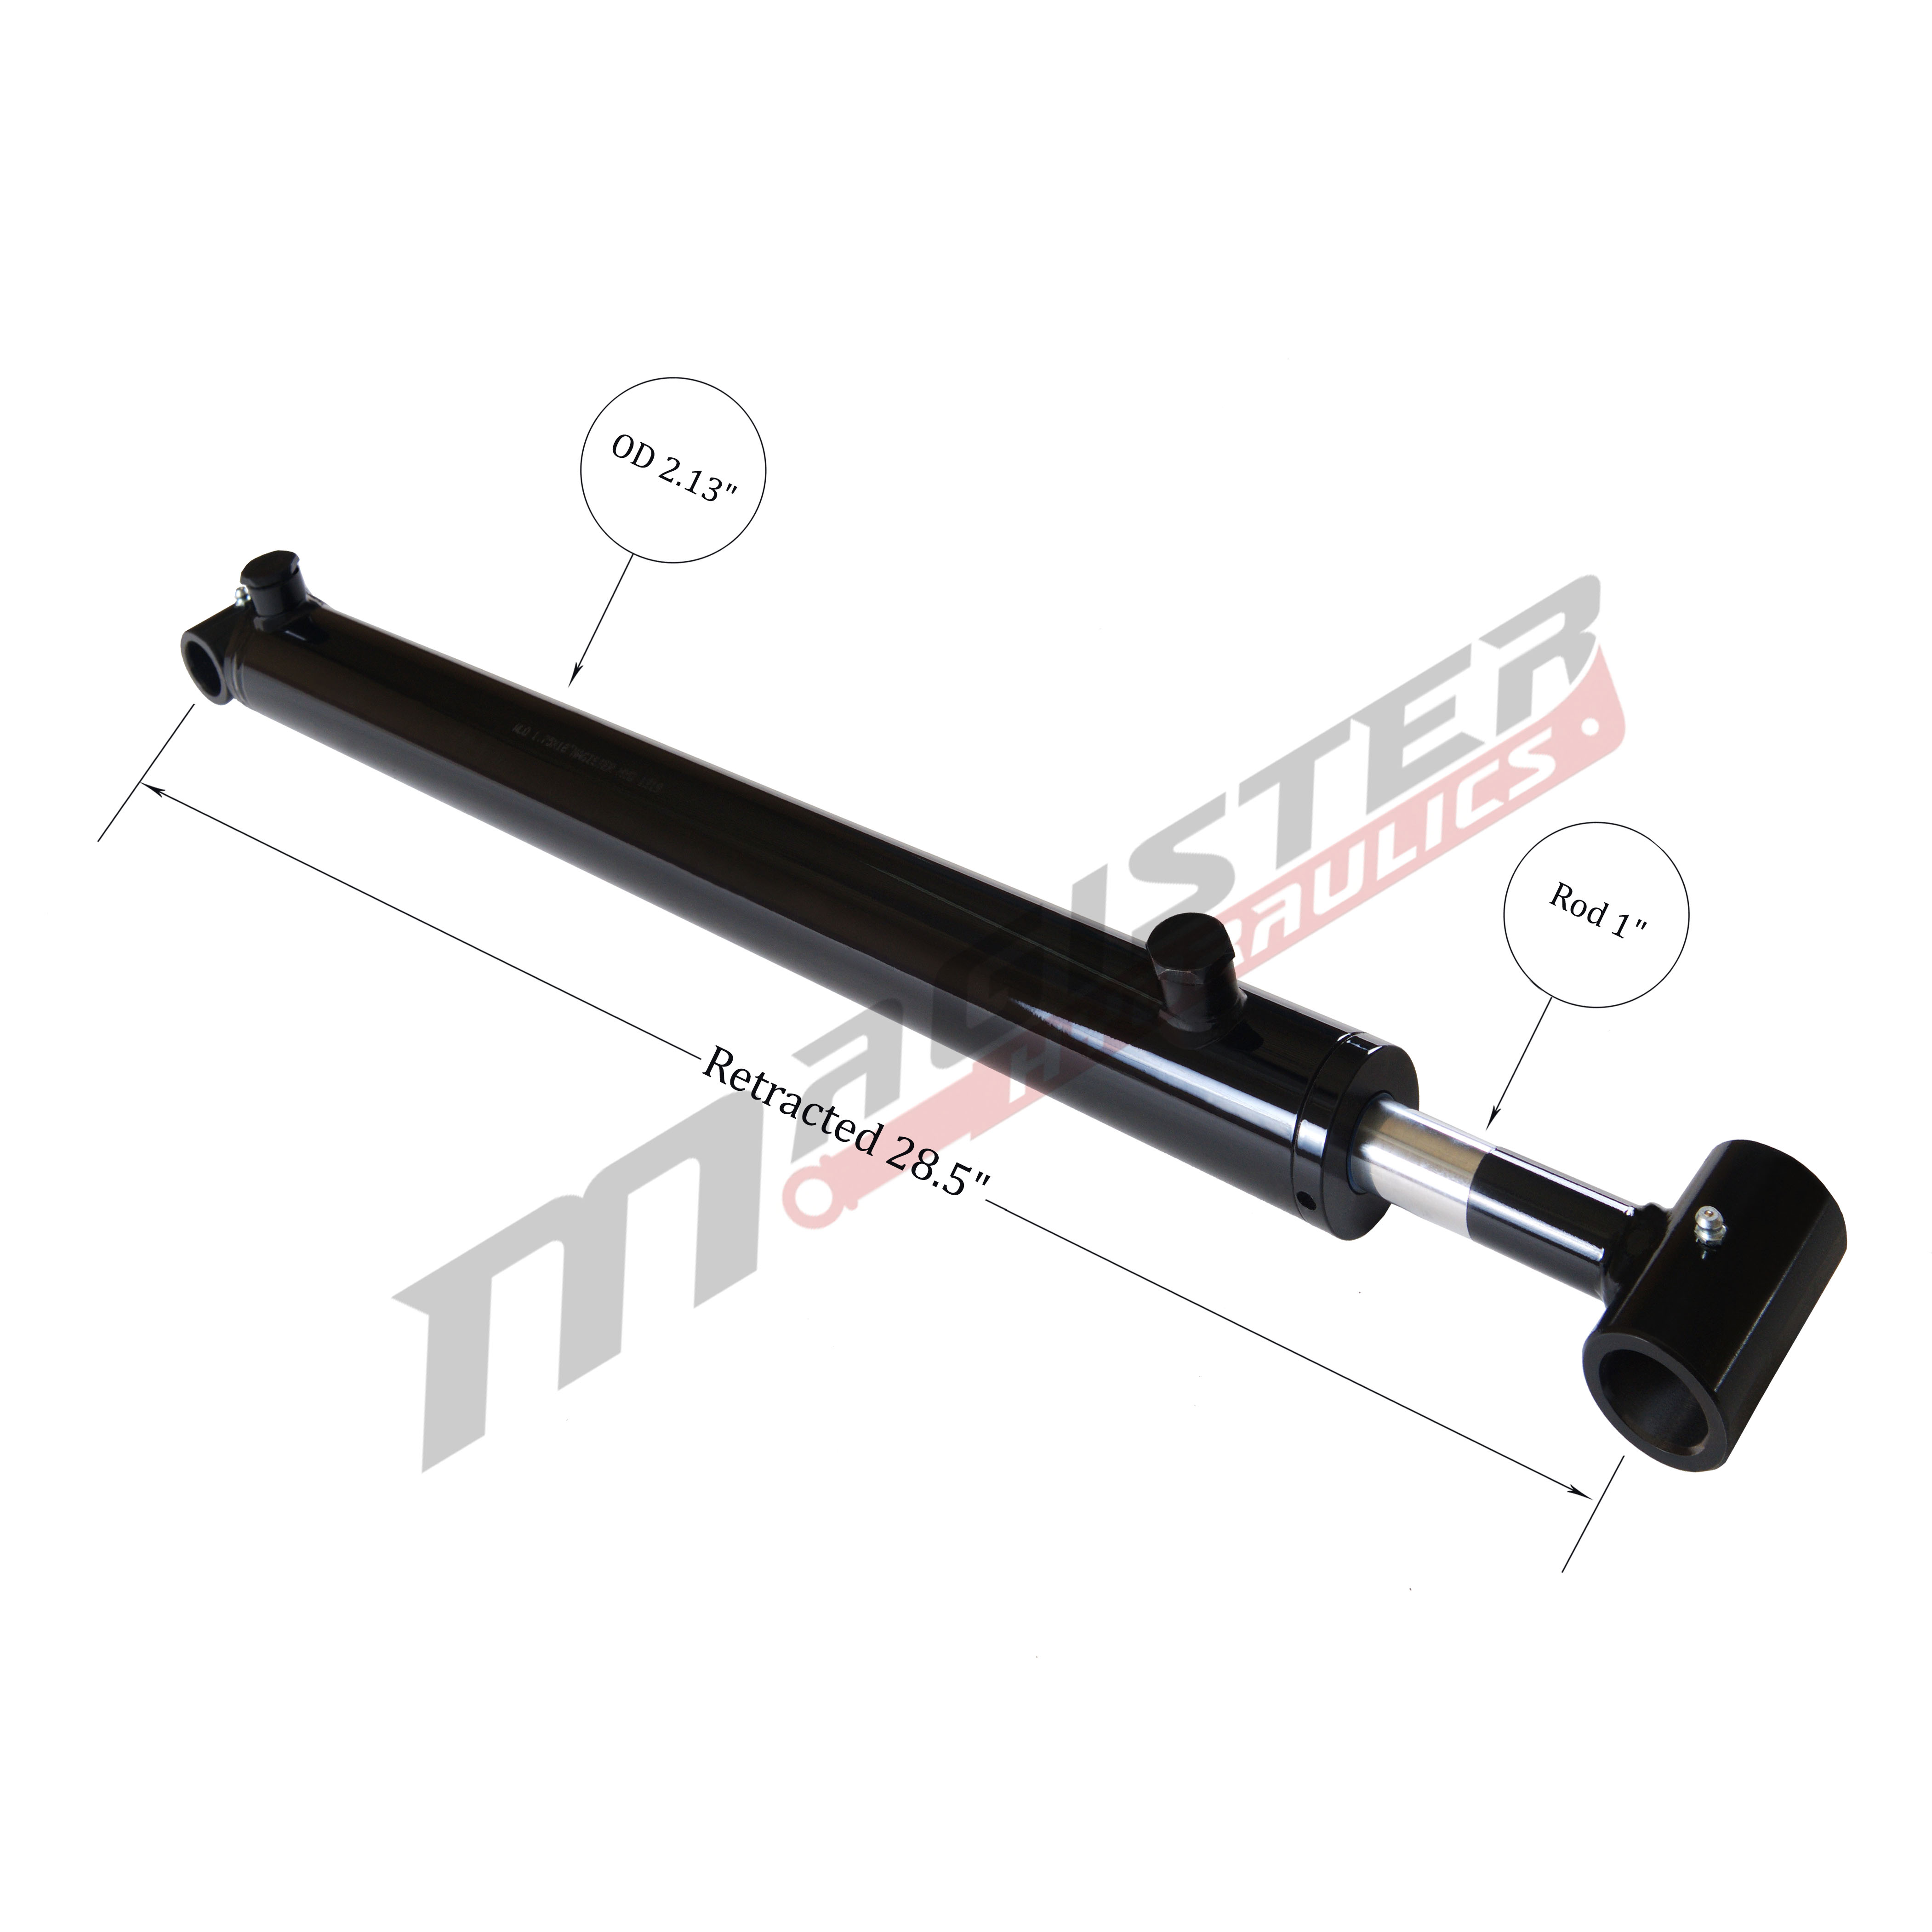 1.75 bore x 14 stroke hydraulic cylinder, welded loader double acting cylinder | Magister Hydraulics